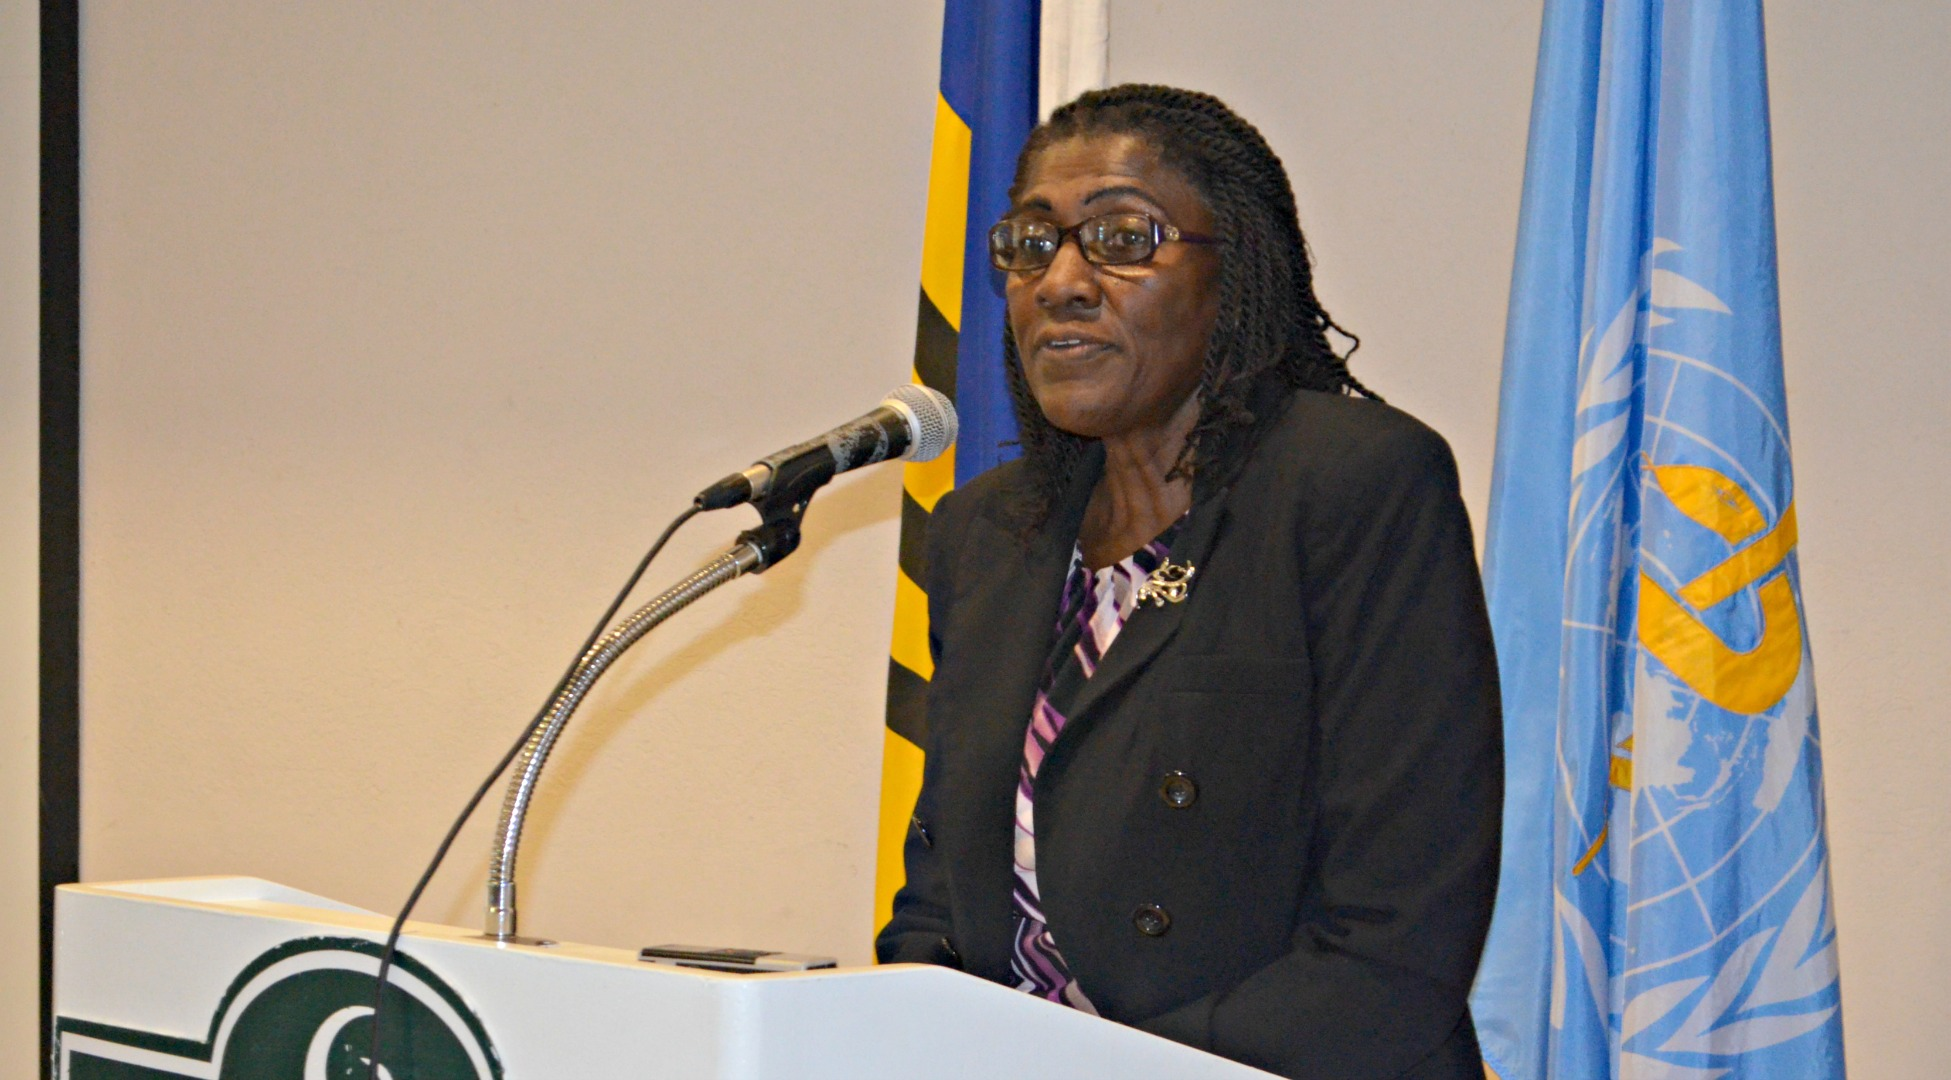 PAHO/WHO Representative for Barbados and the Eastern Caribbean countries Beryl Ions Higher